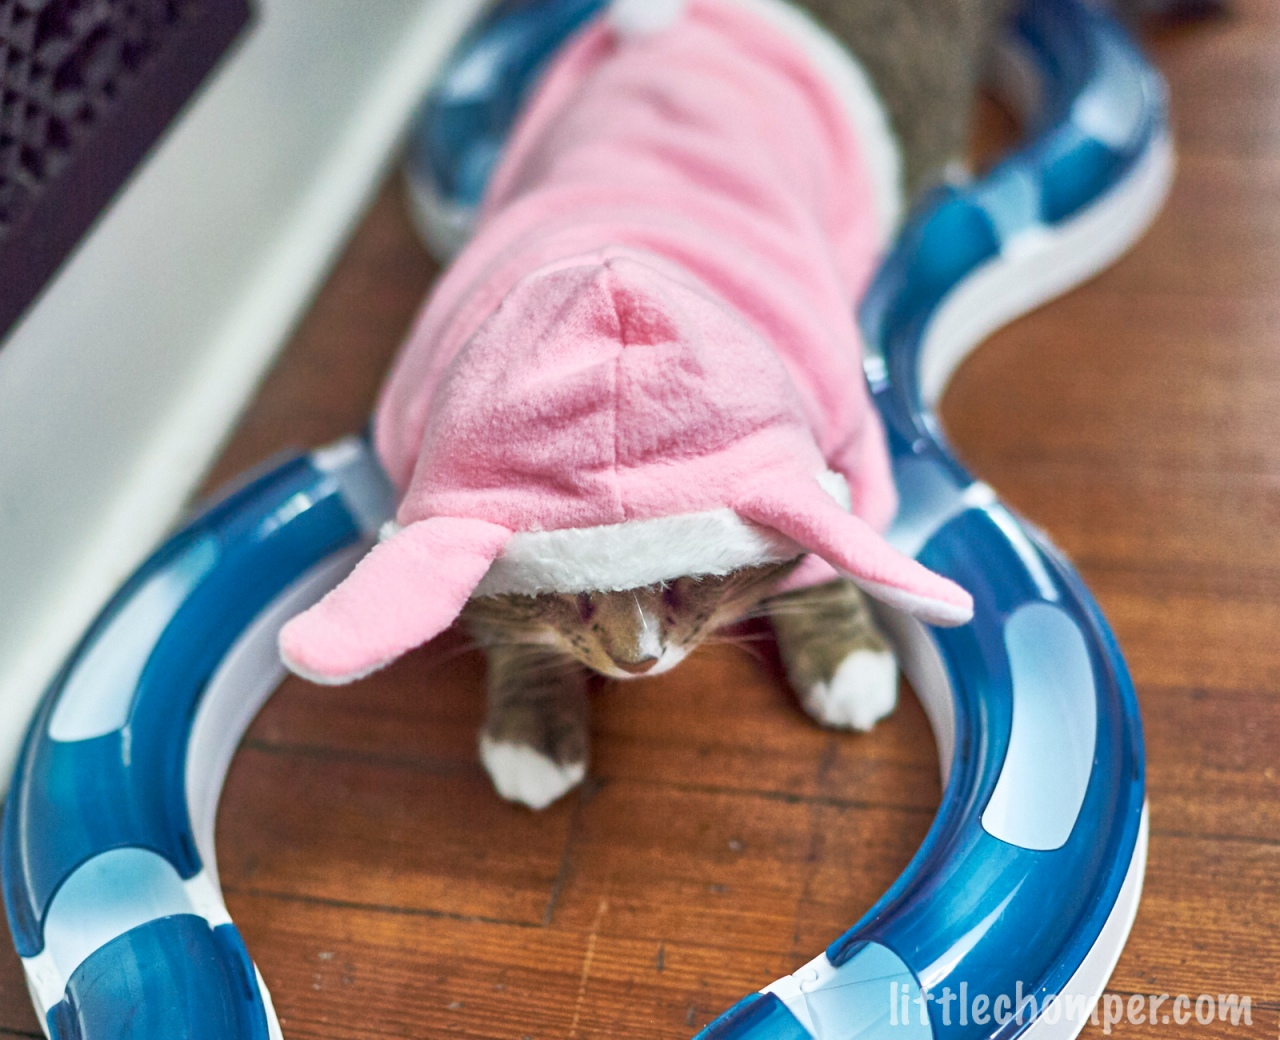 Luna in bunny costume within toy track overhead view.jpg